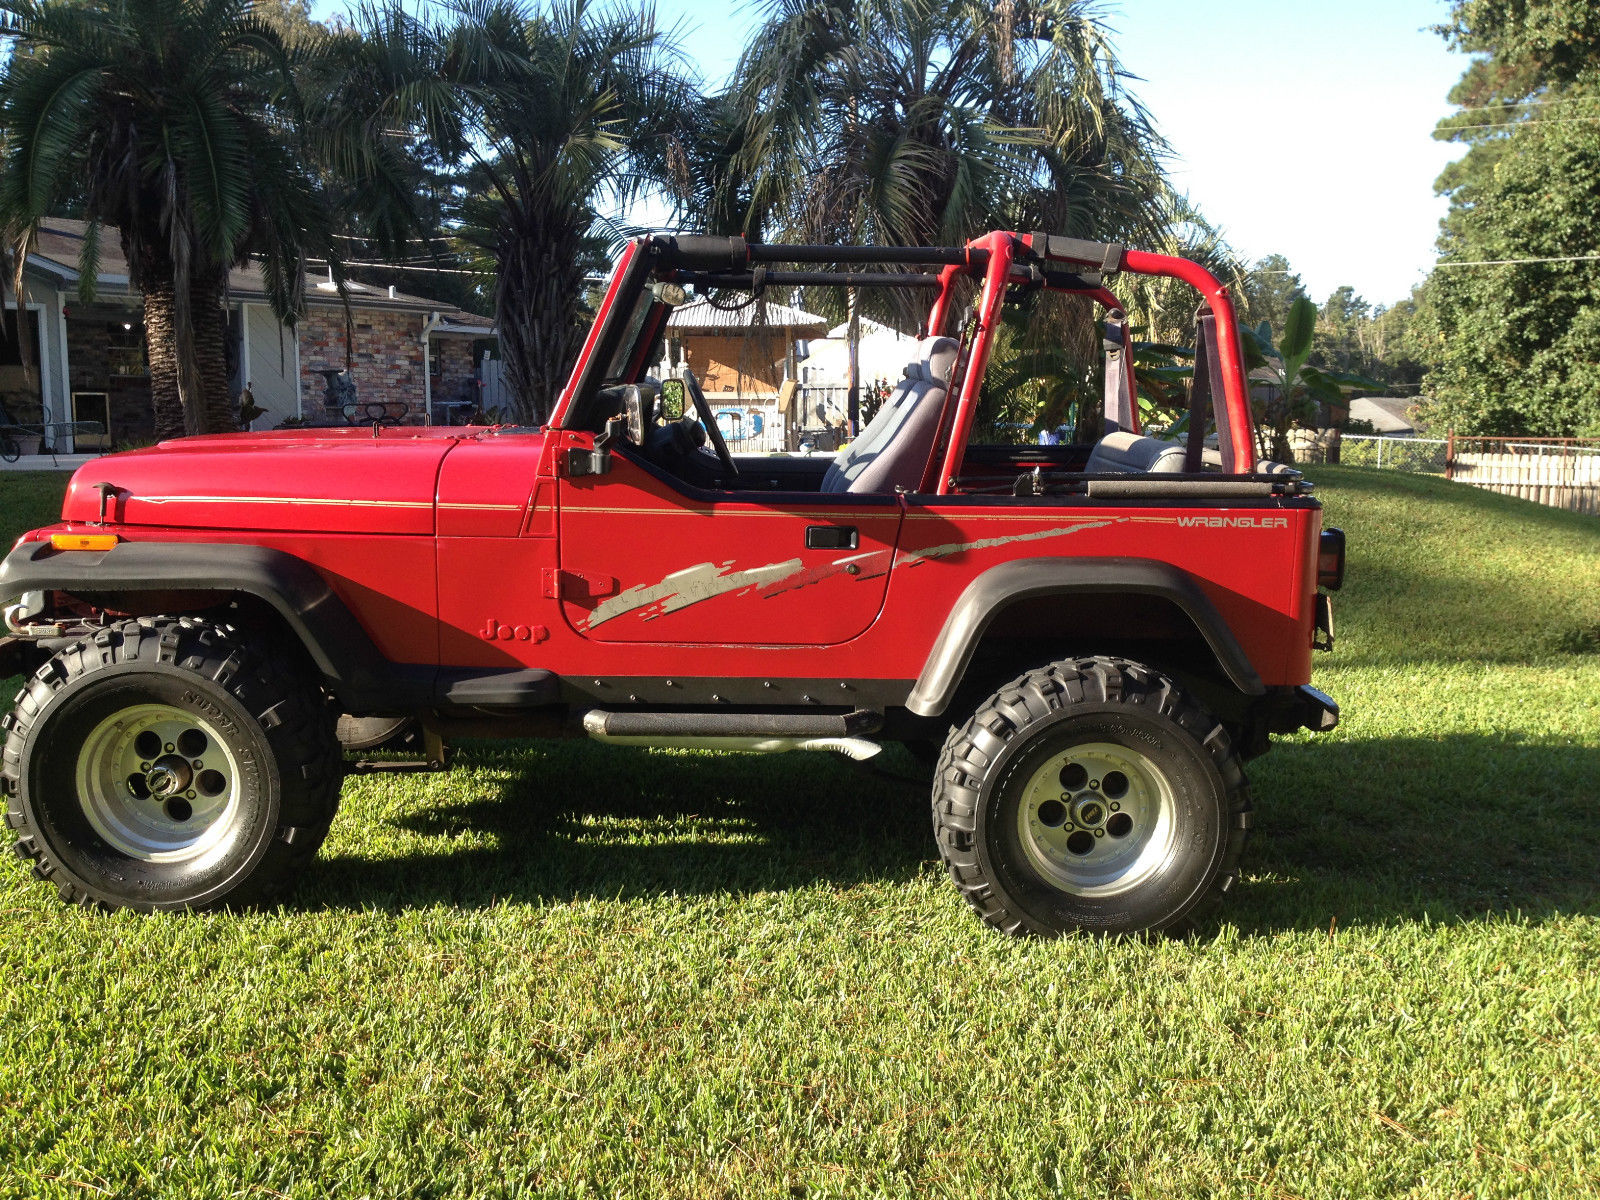 1992 jeep wrangler base sport utility 2 door 350 chevy classic jeep wrangler 1992 for sale. Black Bedroom Furniture Sets. Home Design Ideas